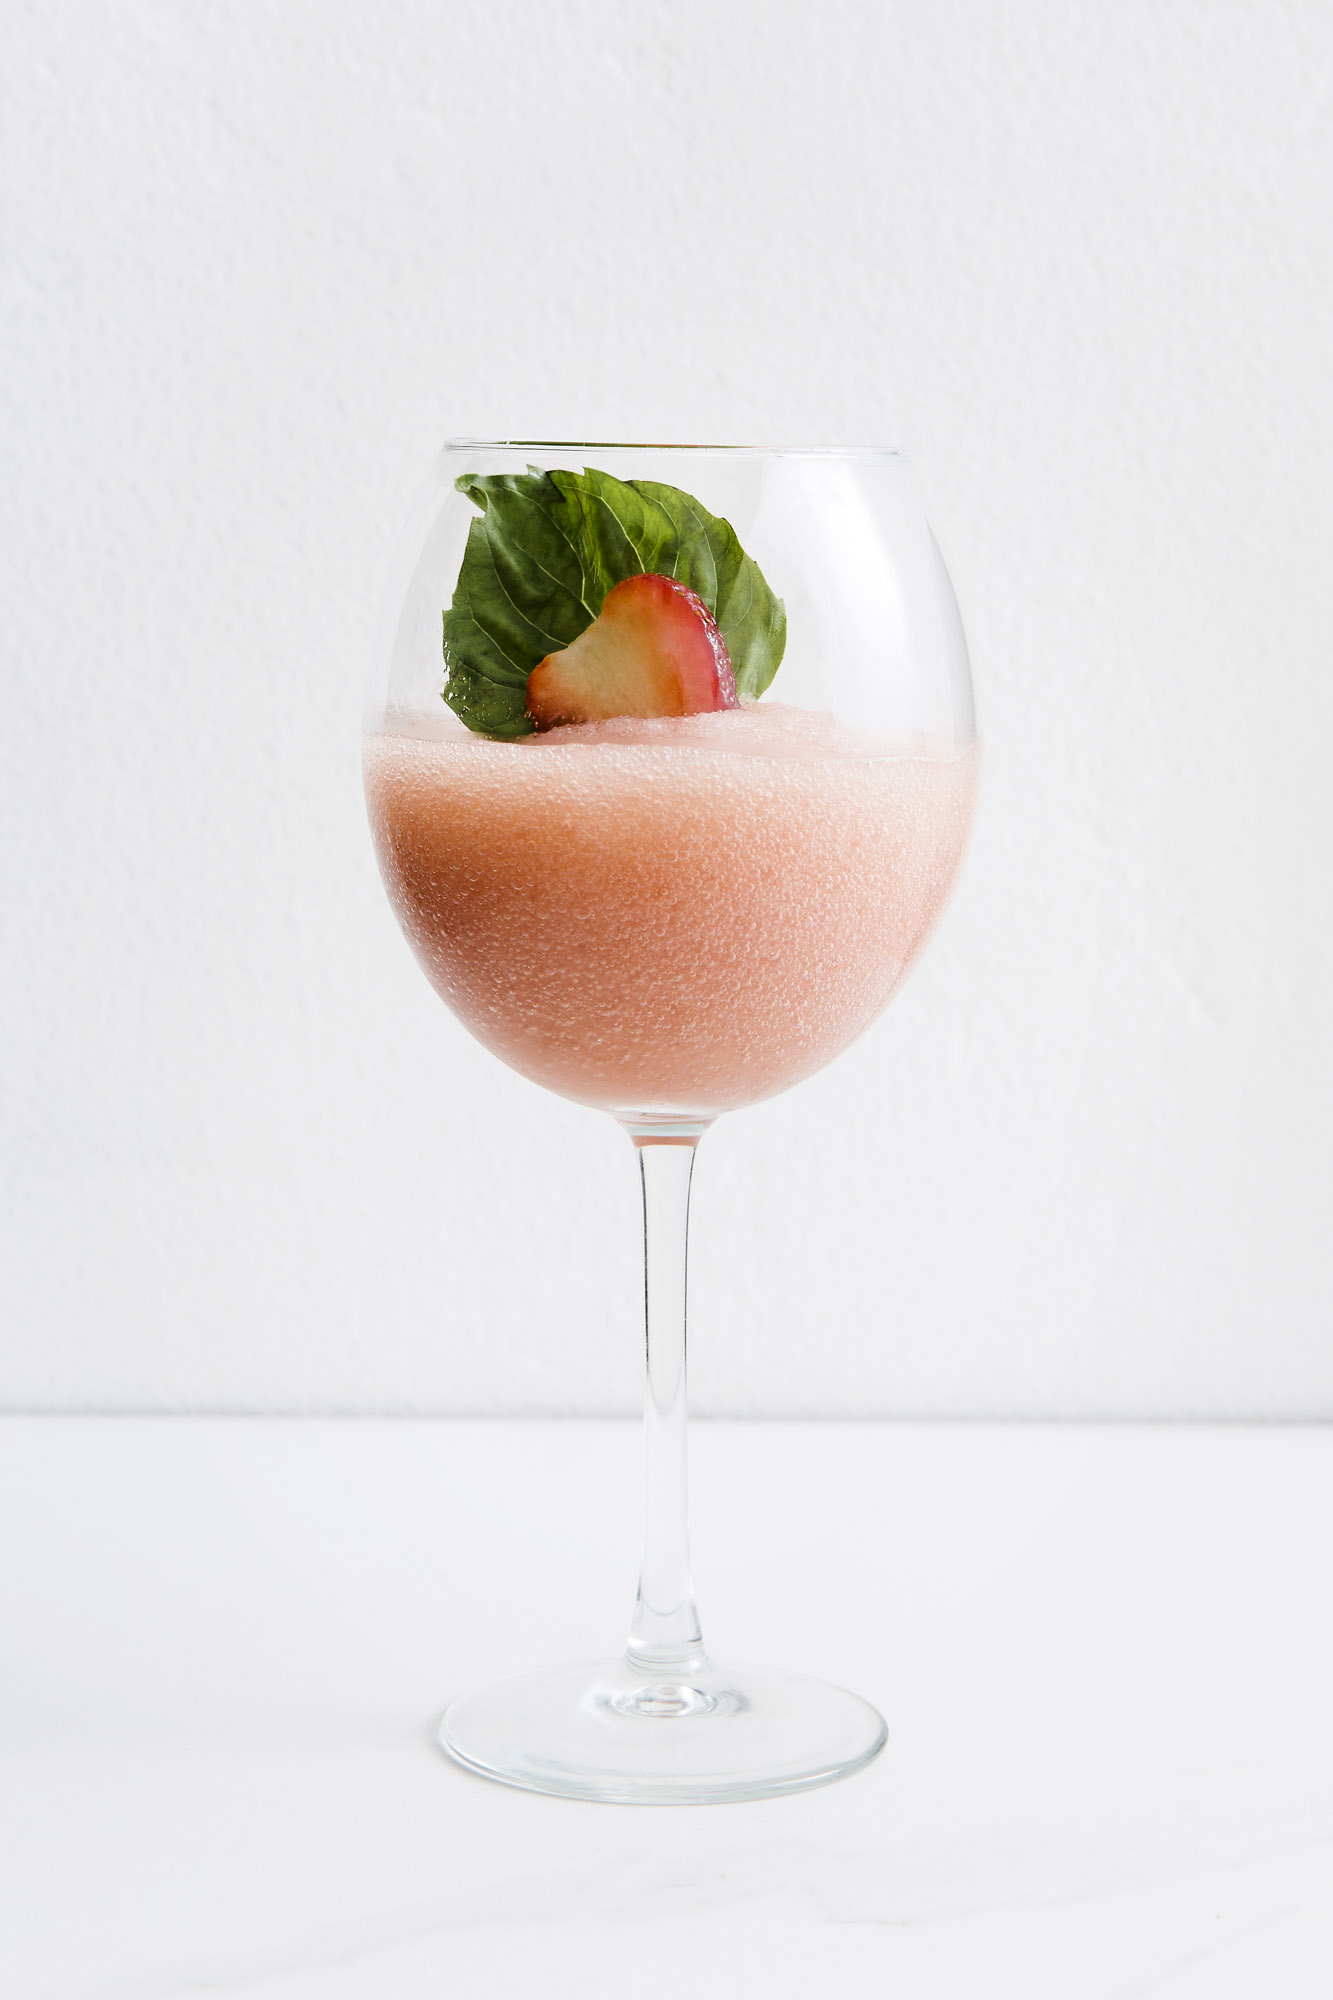 FROSE´   2 oz Rose  1 oz Chareau  3/4 oz Lime juice  1/2 oz Simple Syrup  2-3 Strawberries    Add all ingredients to blender with 1 cup of Ice. Blend and serve with Fresh strawberry garnish.